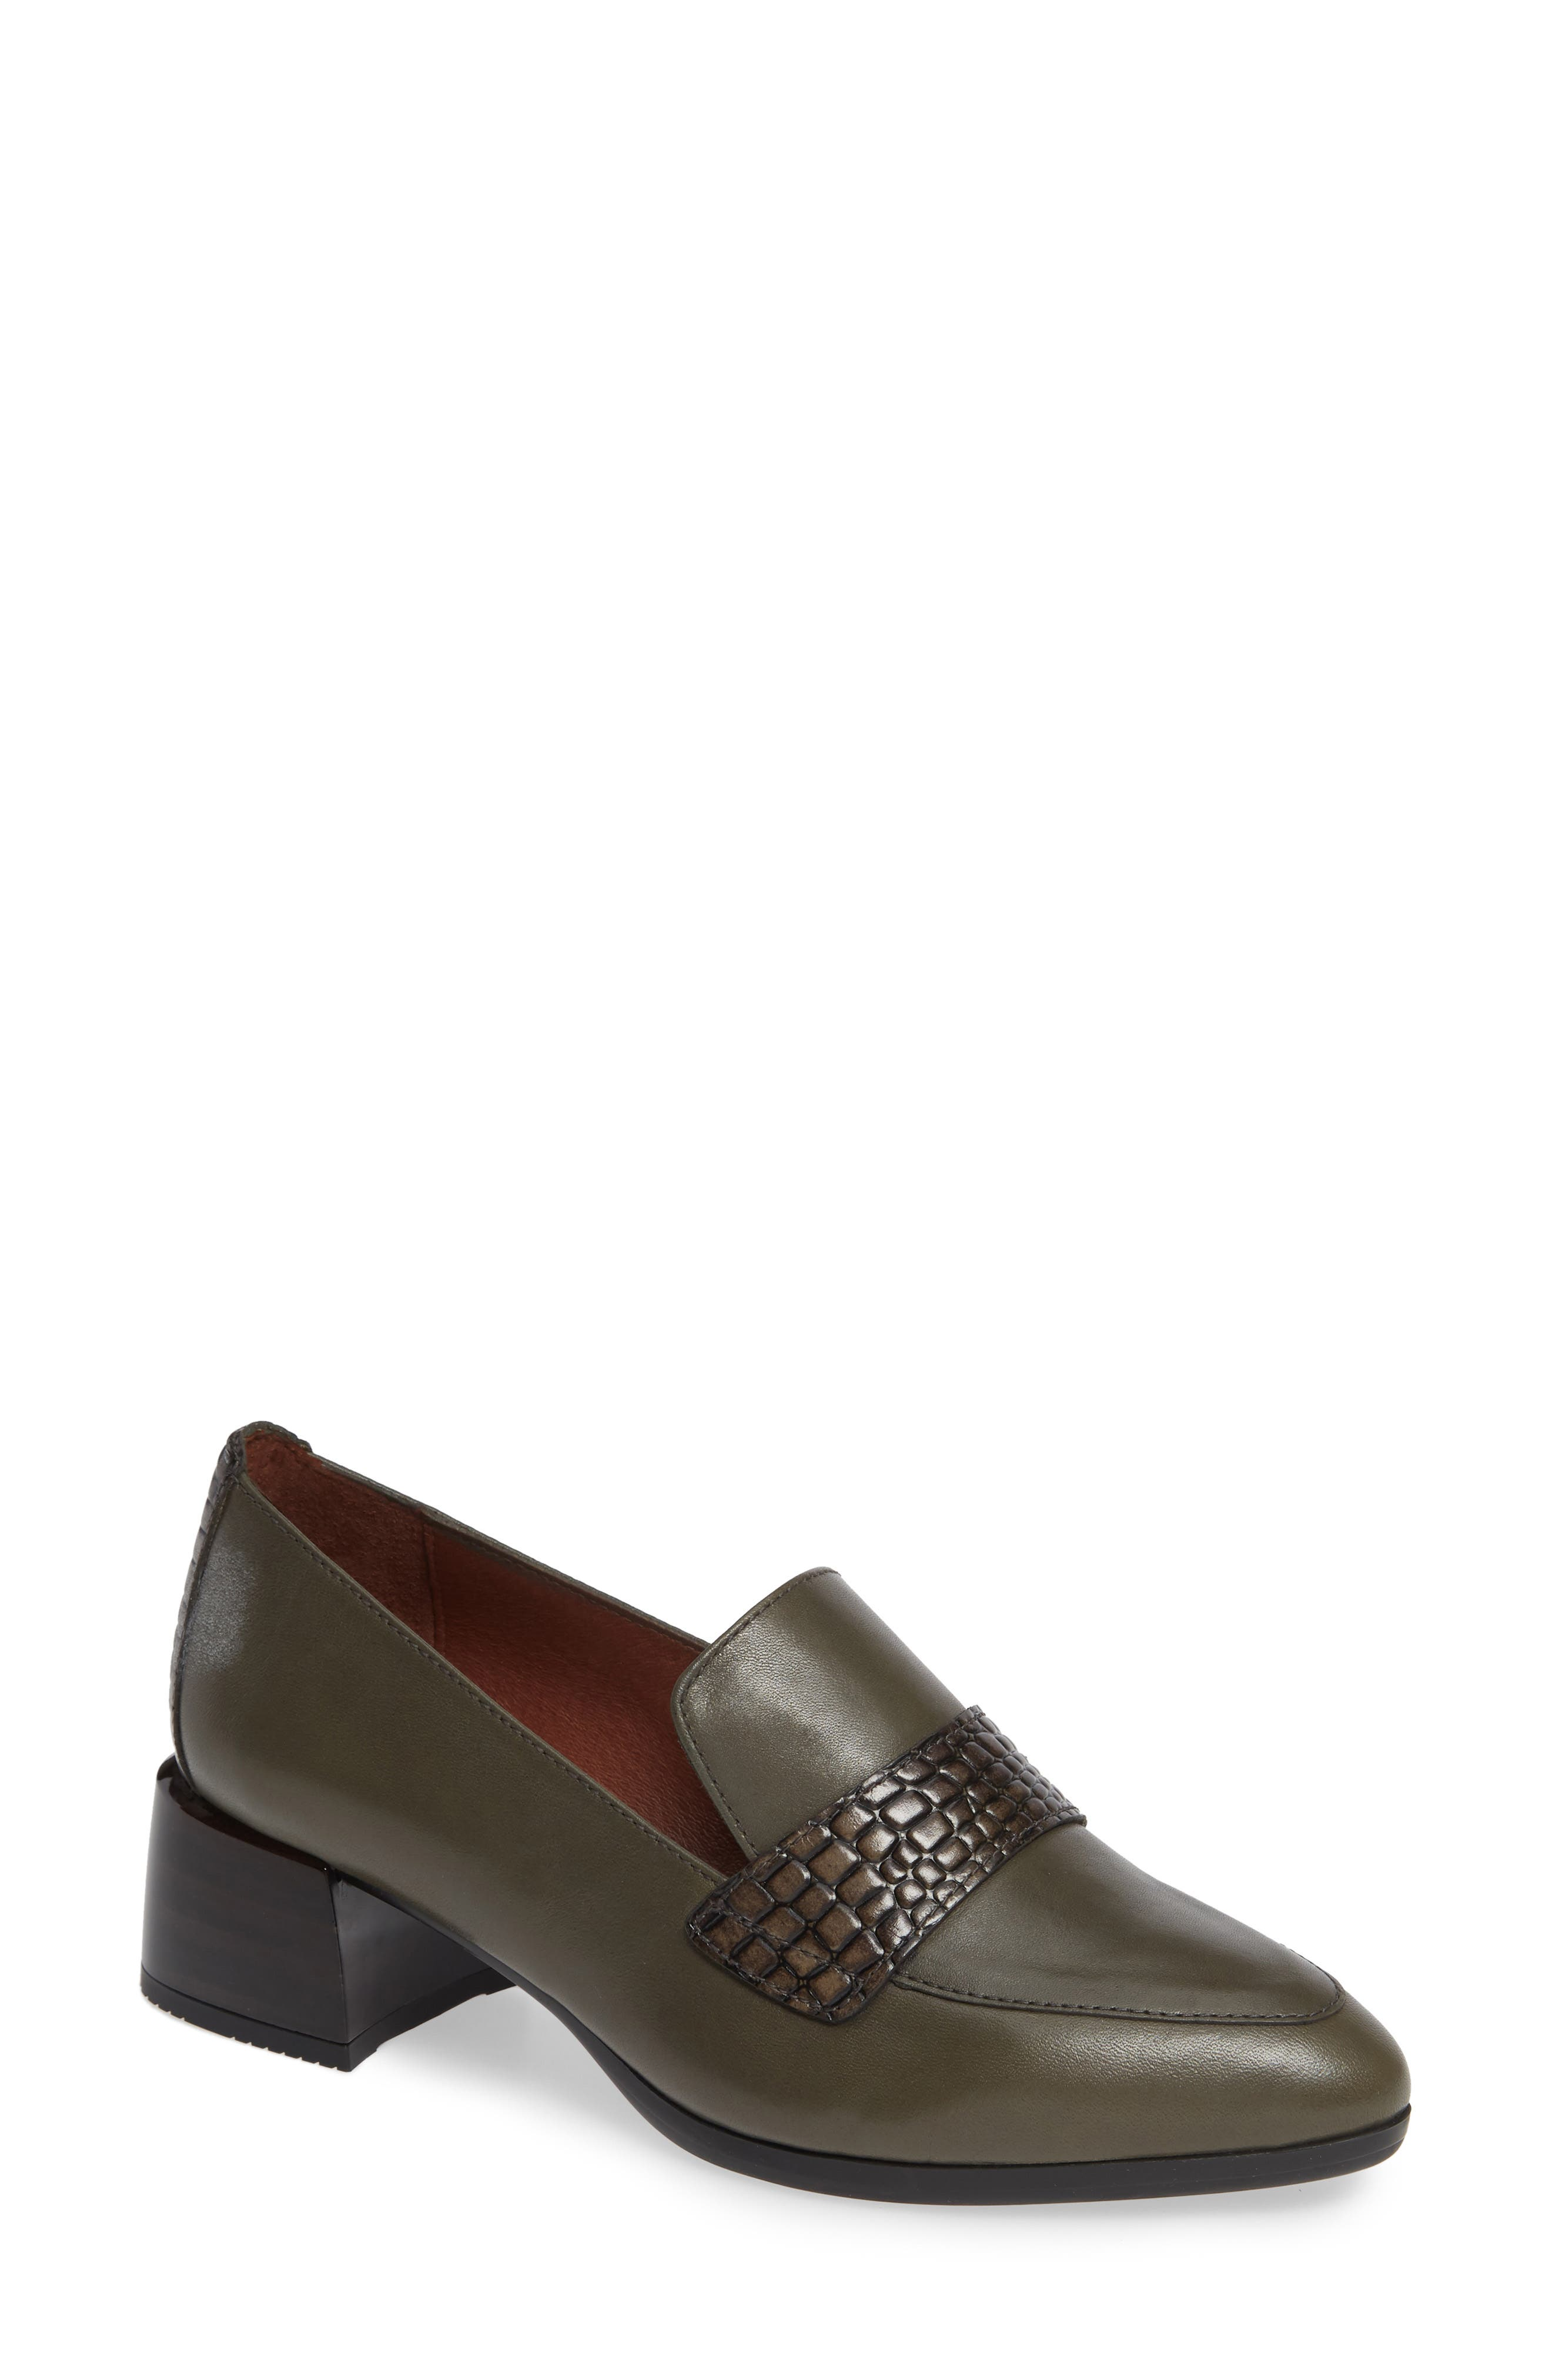 HISPANITAS, Gabrianna Block Heel Loafer, Main thumbnail 1, color, SOHO ARMY/ CAIMAN ARMY LEATHER